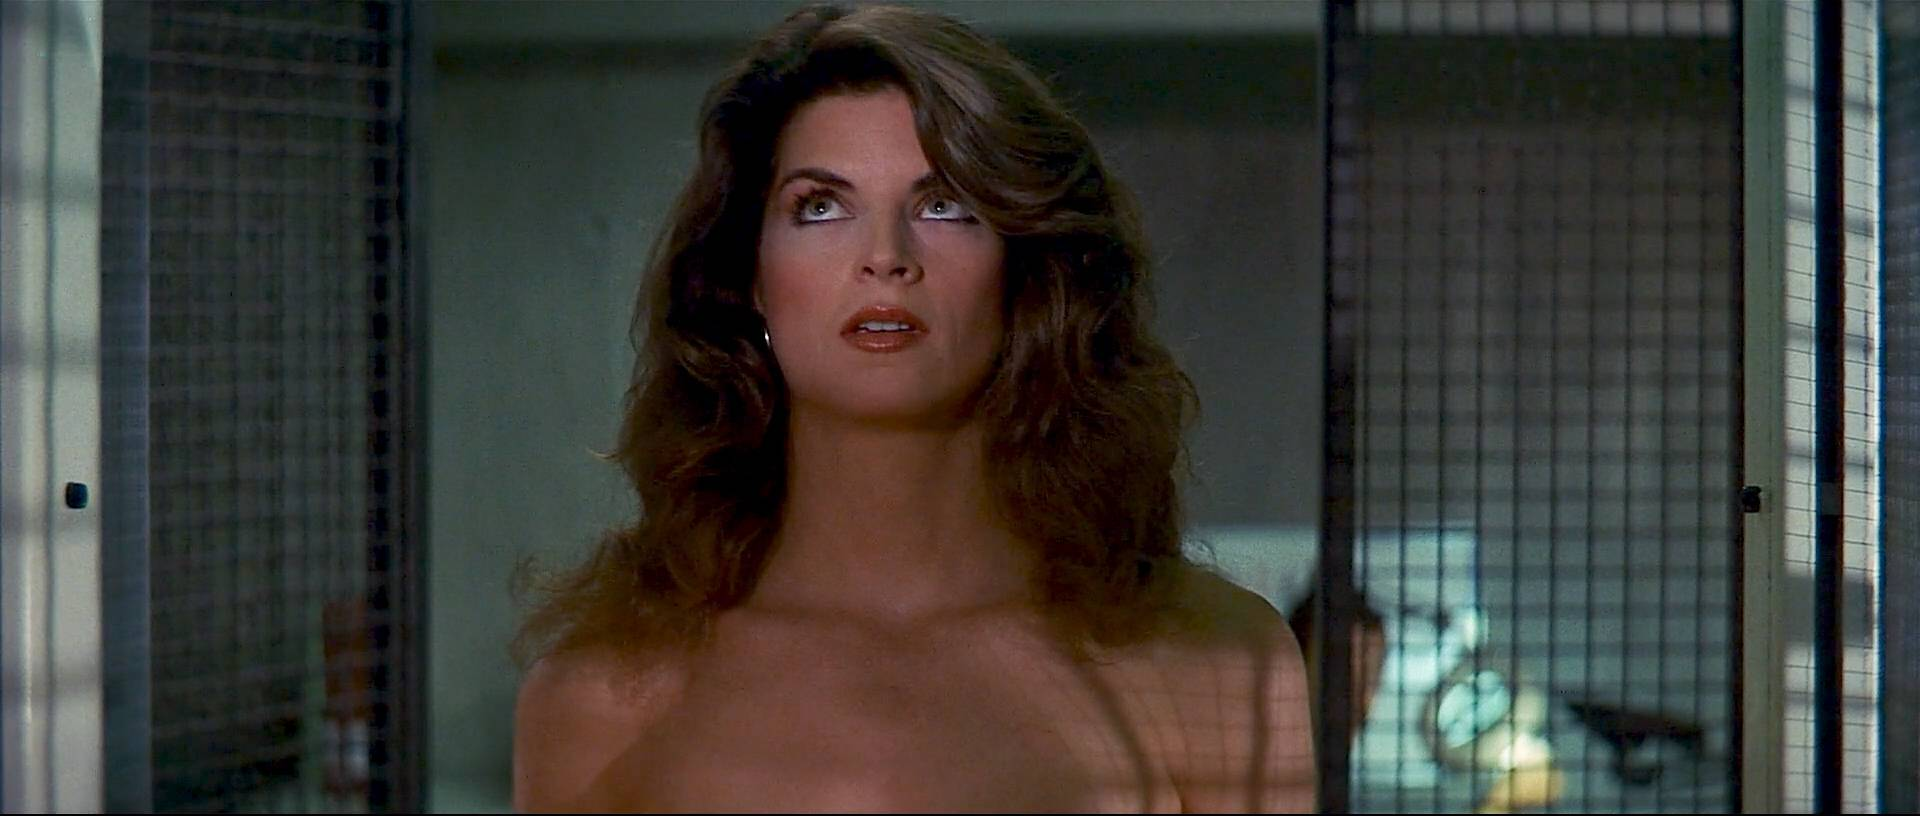 Apologise, Kirstie alley hot nude cannot